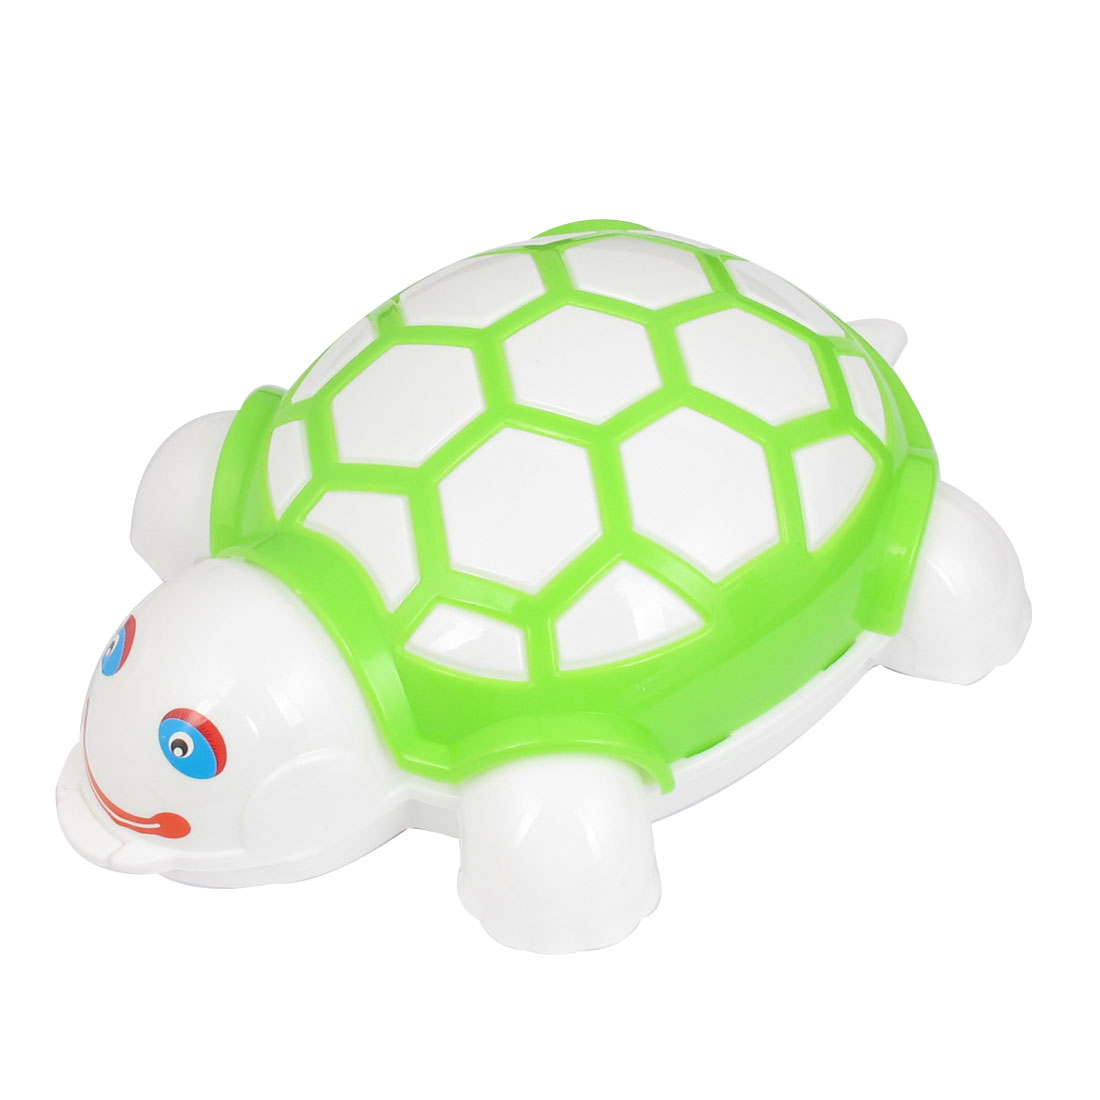 Green Plastic Tortoise Shaped Push Double Rollers Cleaning Brush Cleaner Tool for Carpet Mat